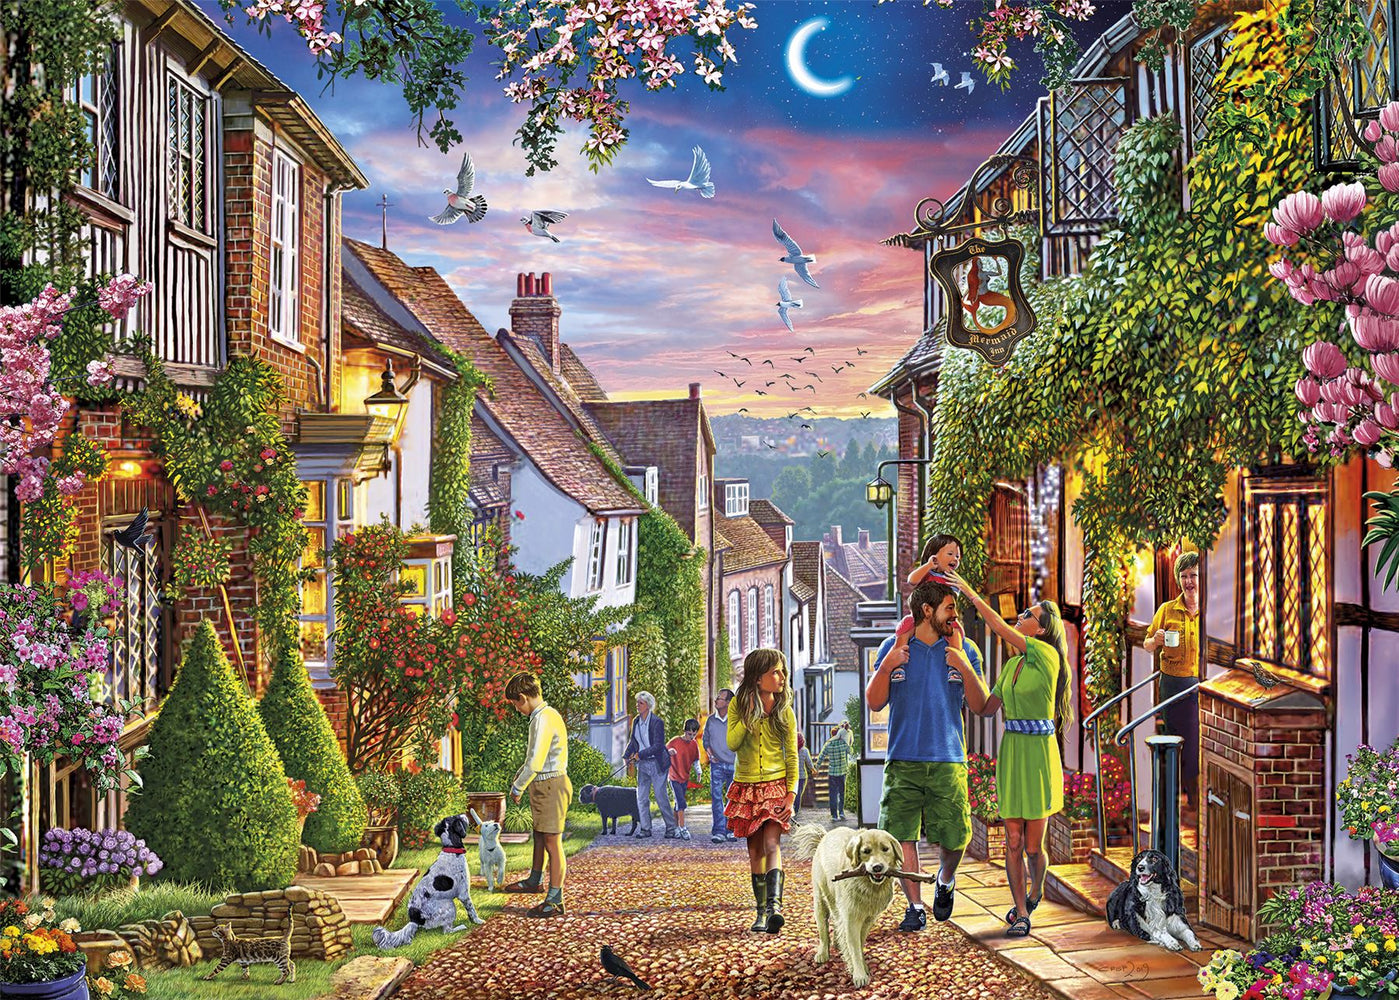 New 2020 Gibsons Mermaid Street, Rye 1000 piece Jigsaw Puzzle - All Jigsaw Puzzles